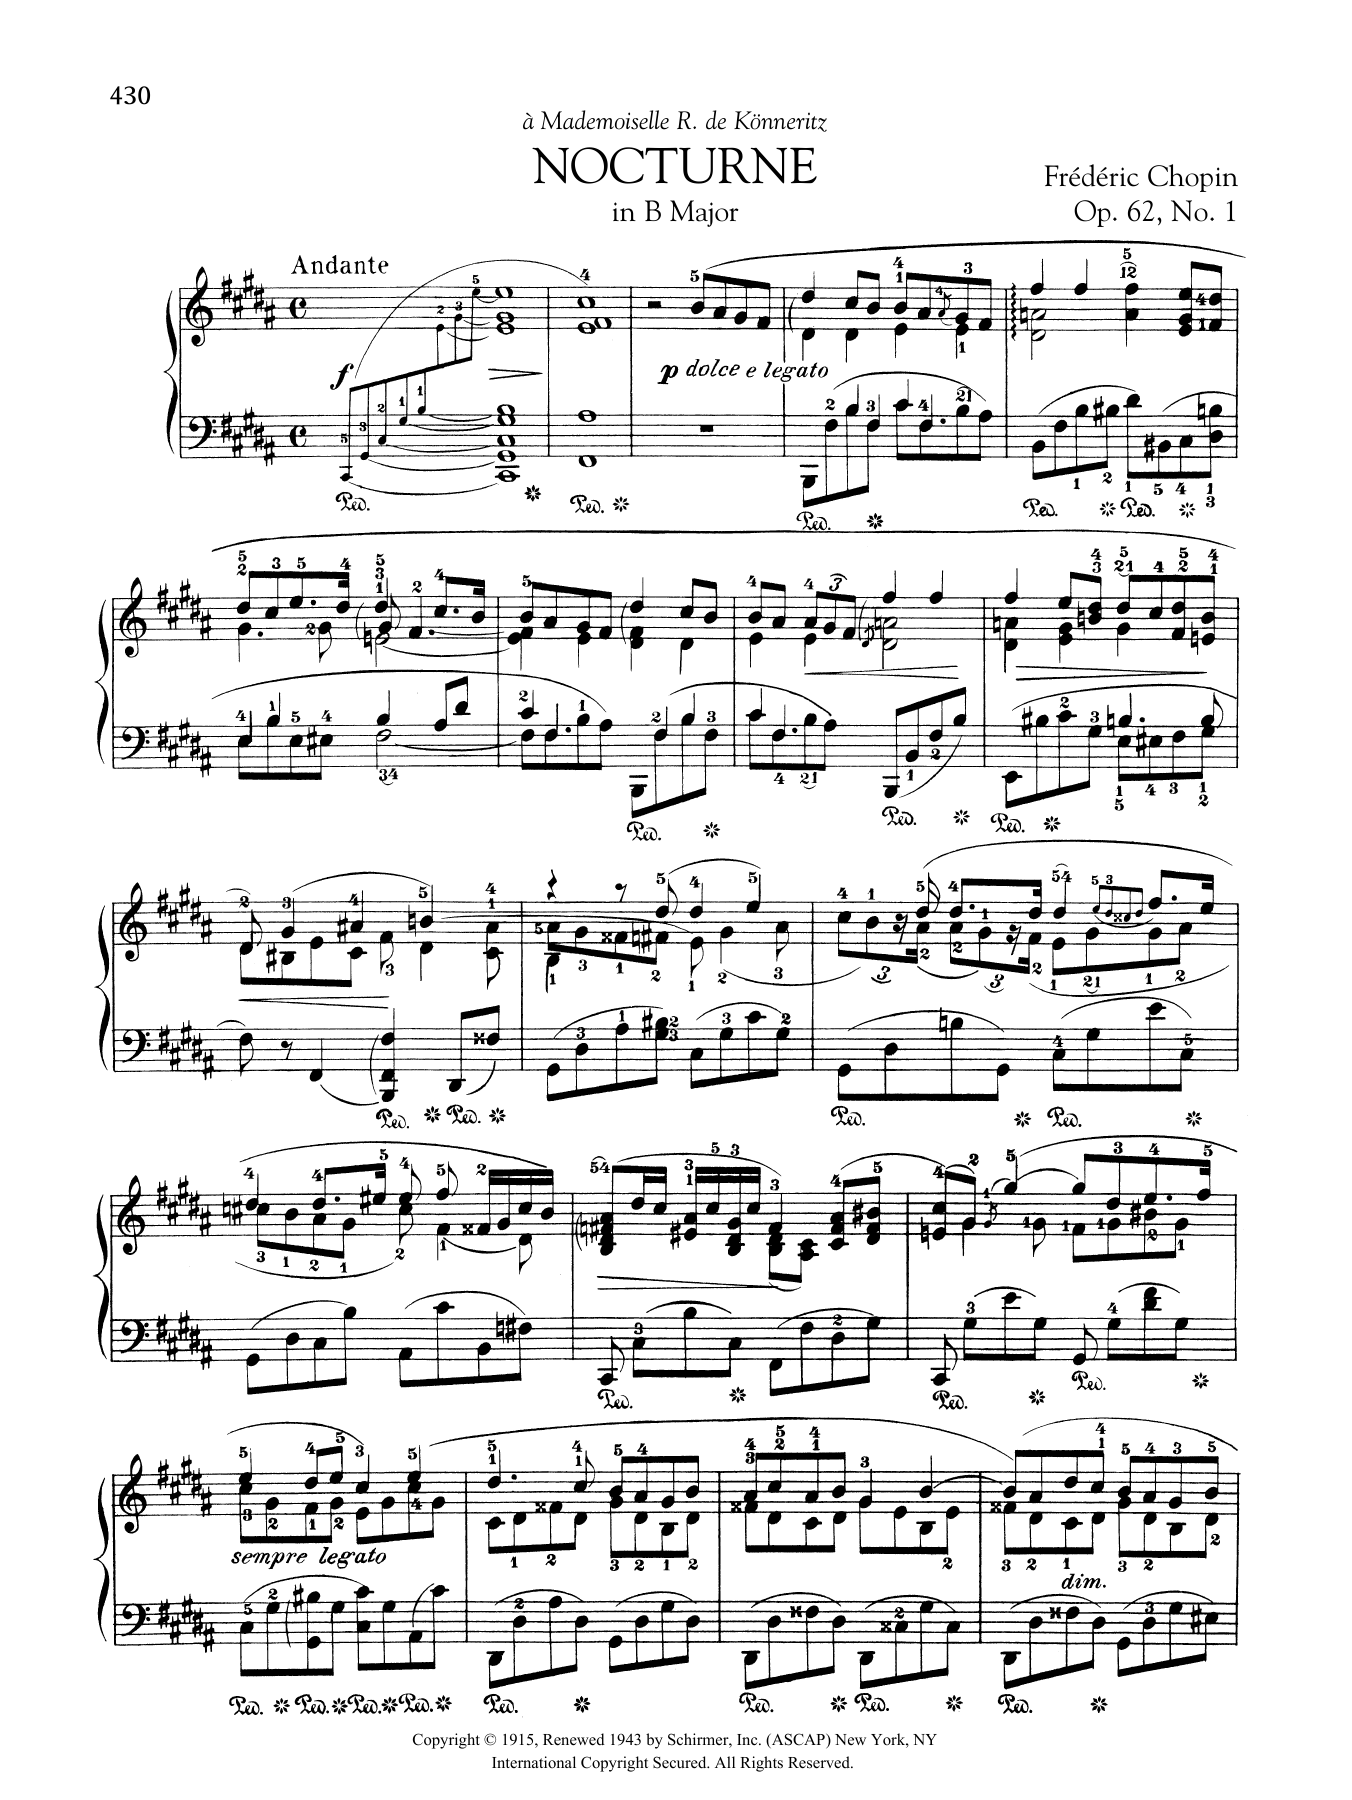 Nocturne in B Major, Op. 62, No. 1